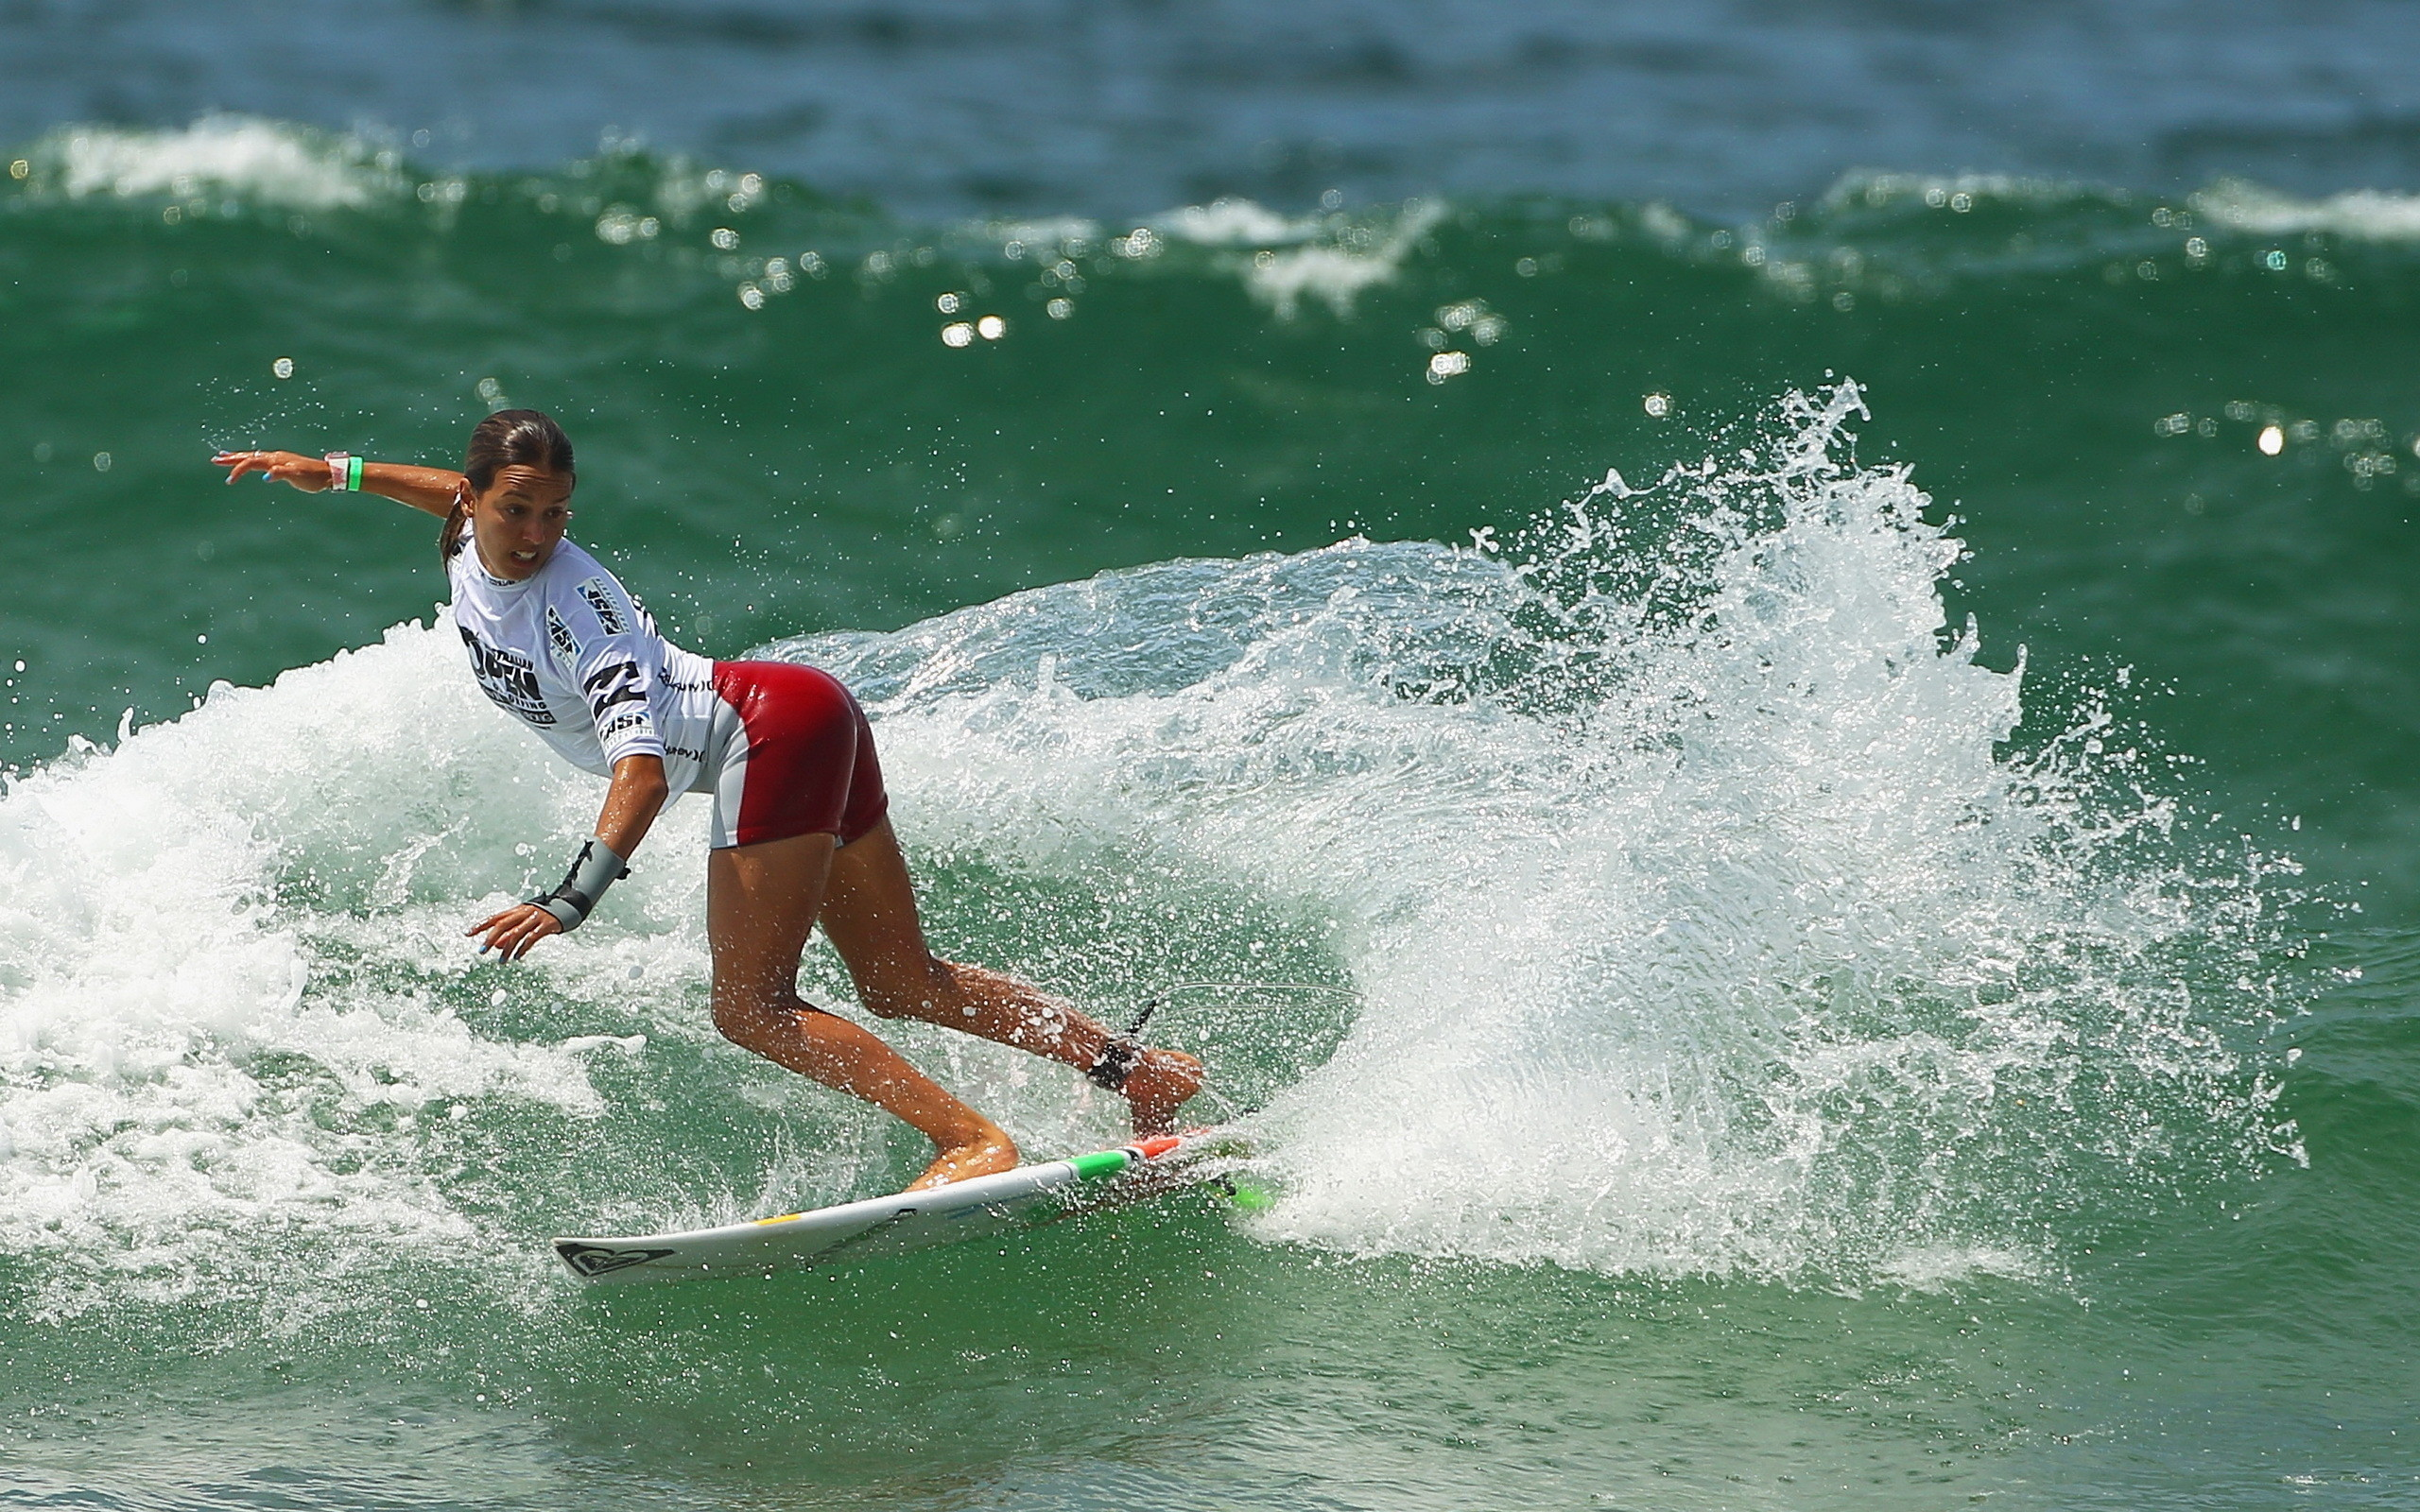 2560x1600 Surfing girls pictures